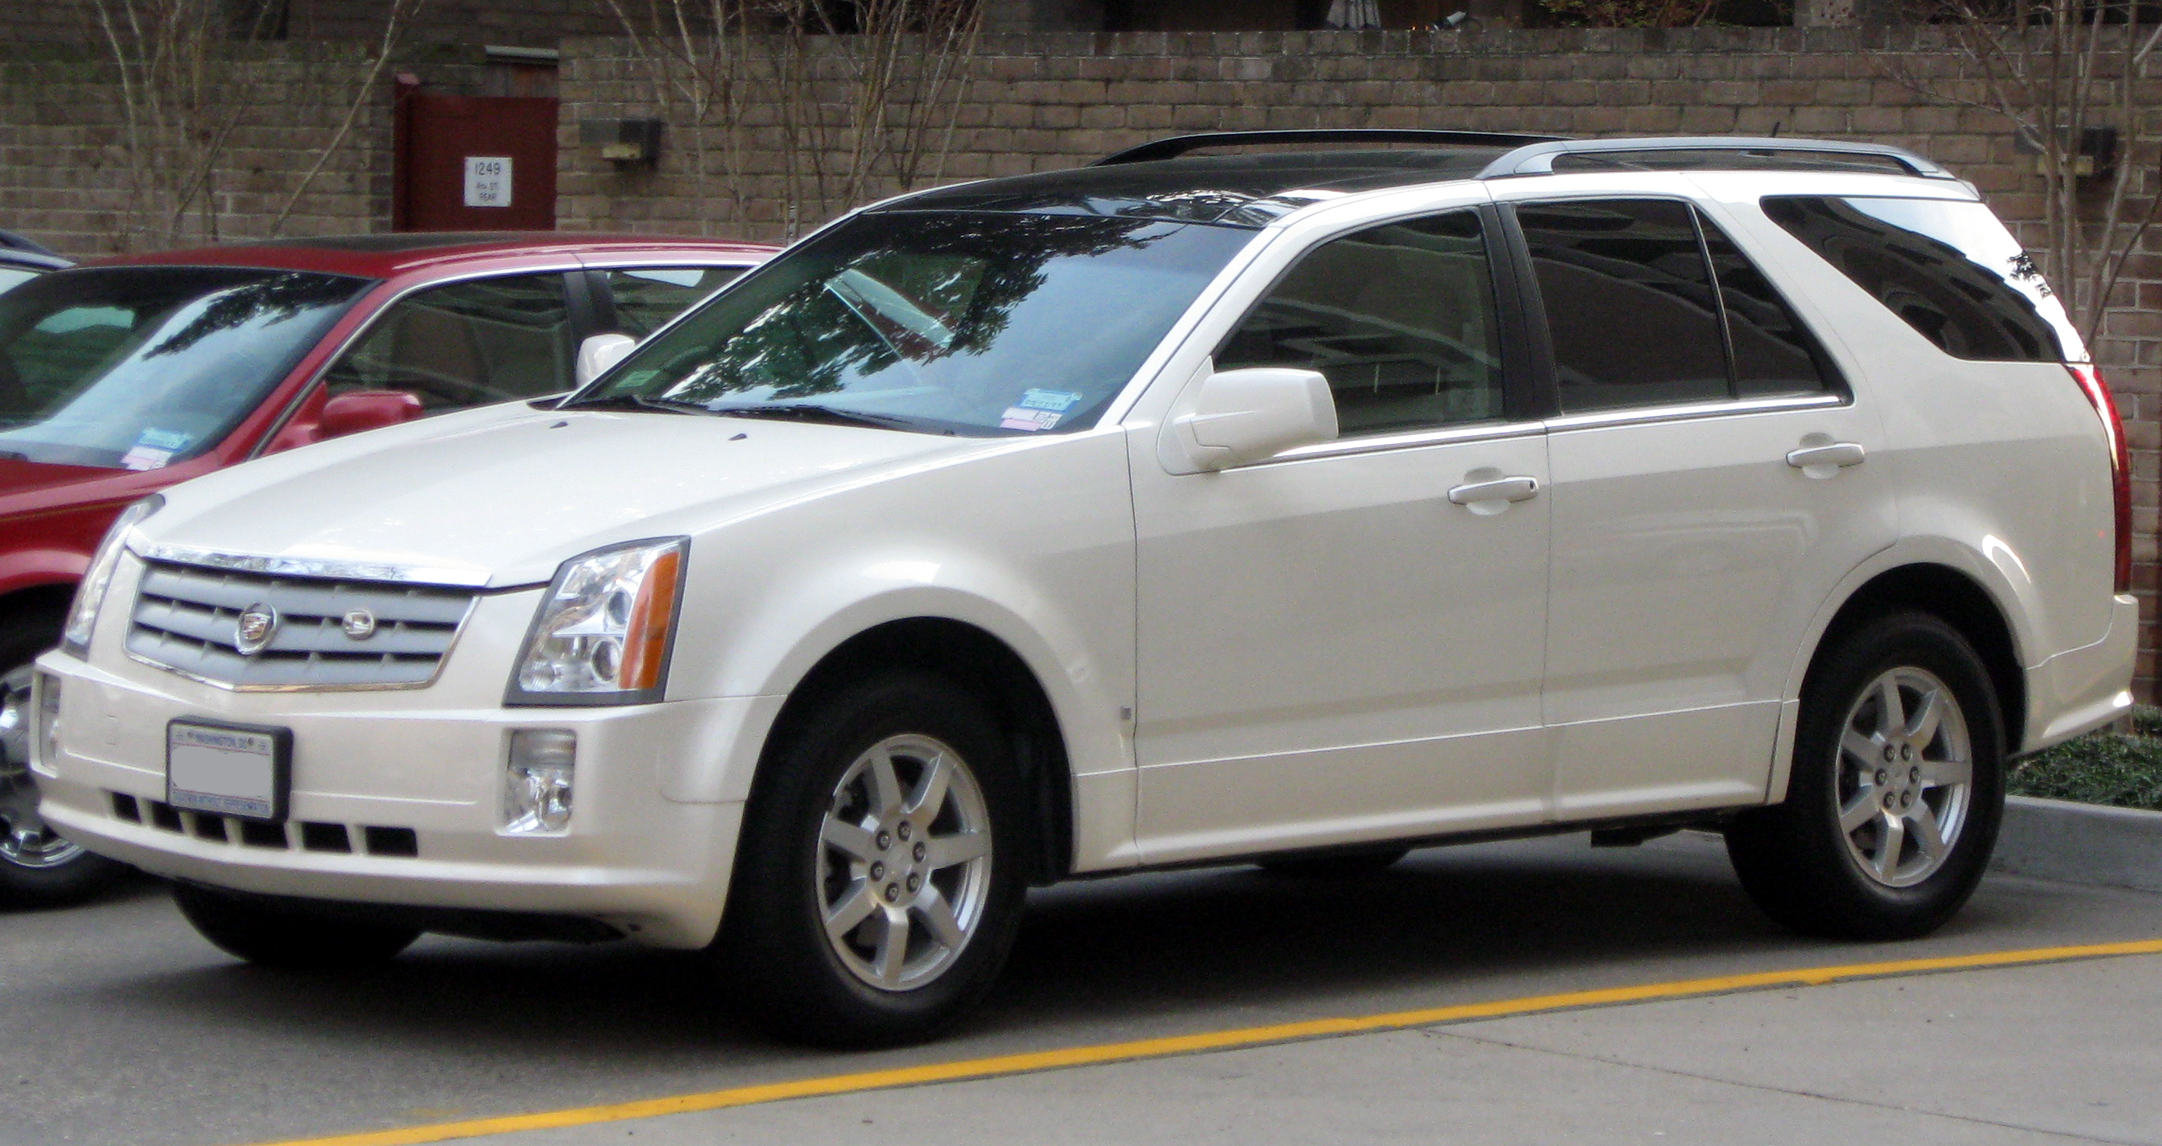 2009 Cadillac Srx Information And Photos Zombiedrive Largest Engine 15